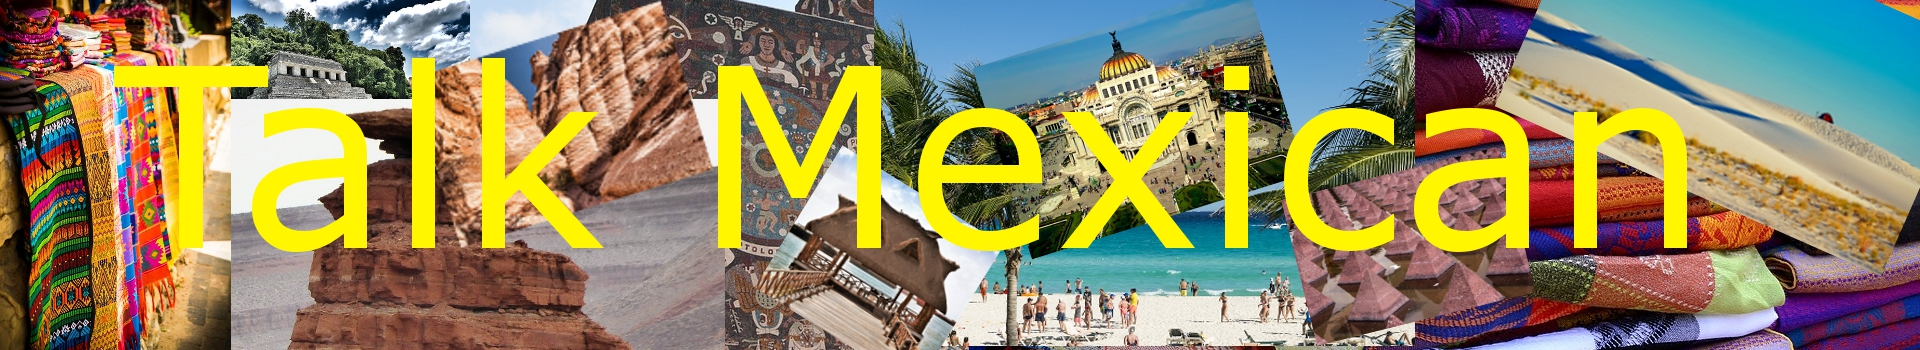 What are some main differences in the spanish that Dominican people speak compared to the Spanish Mexican…?